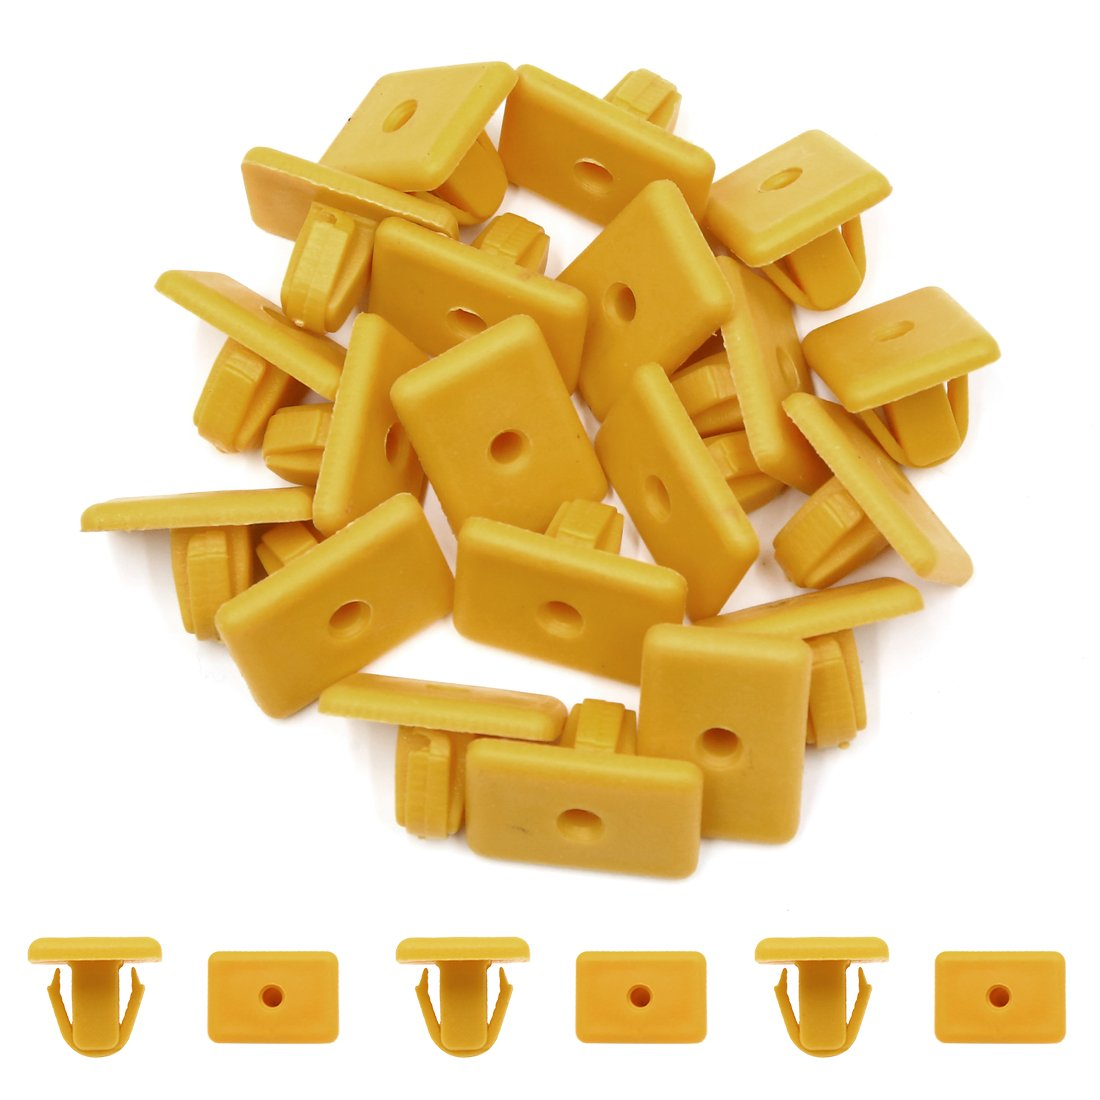 uxcell 20 Pcs Yellow Square Head Plastic Rivets Retainer Clips 12mm x 12mm x 15mm